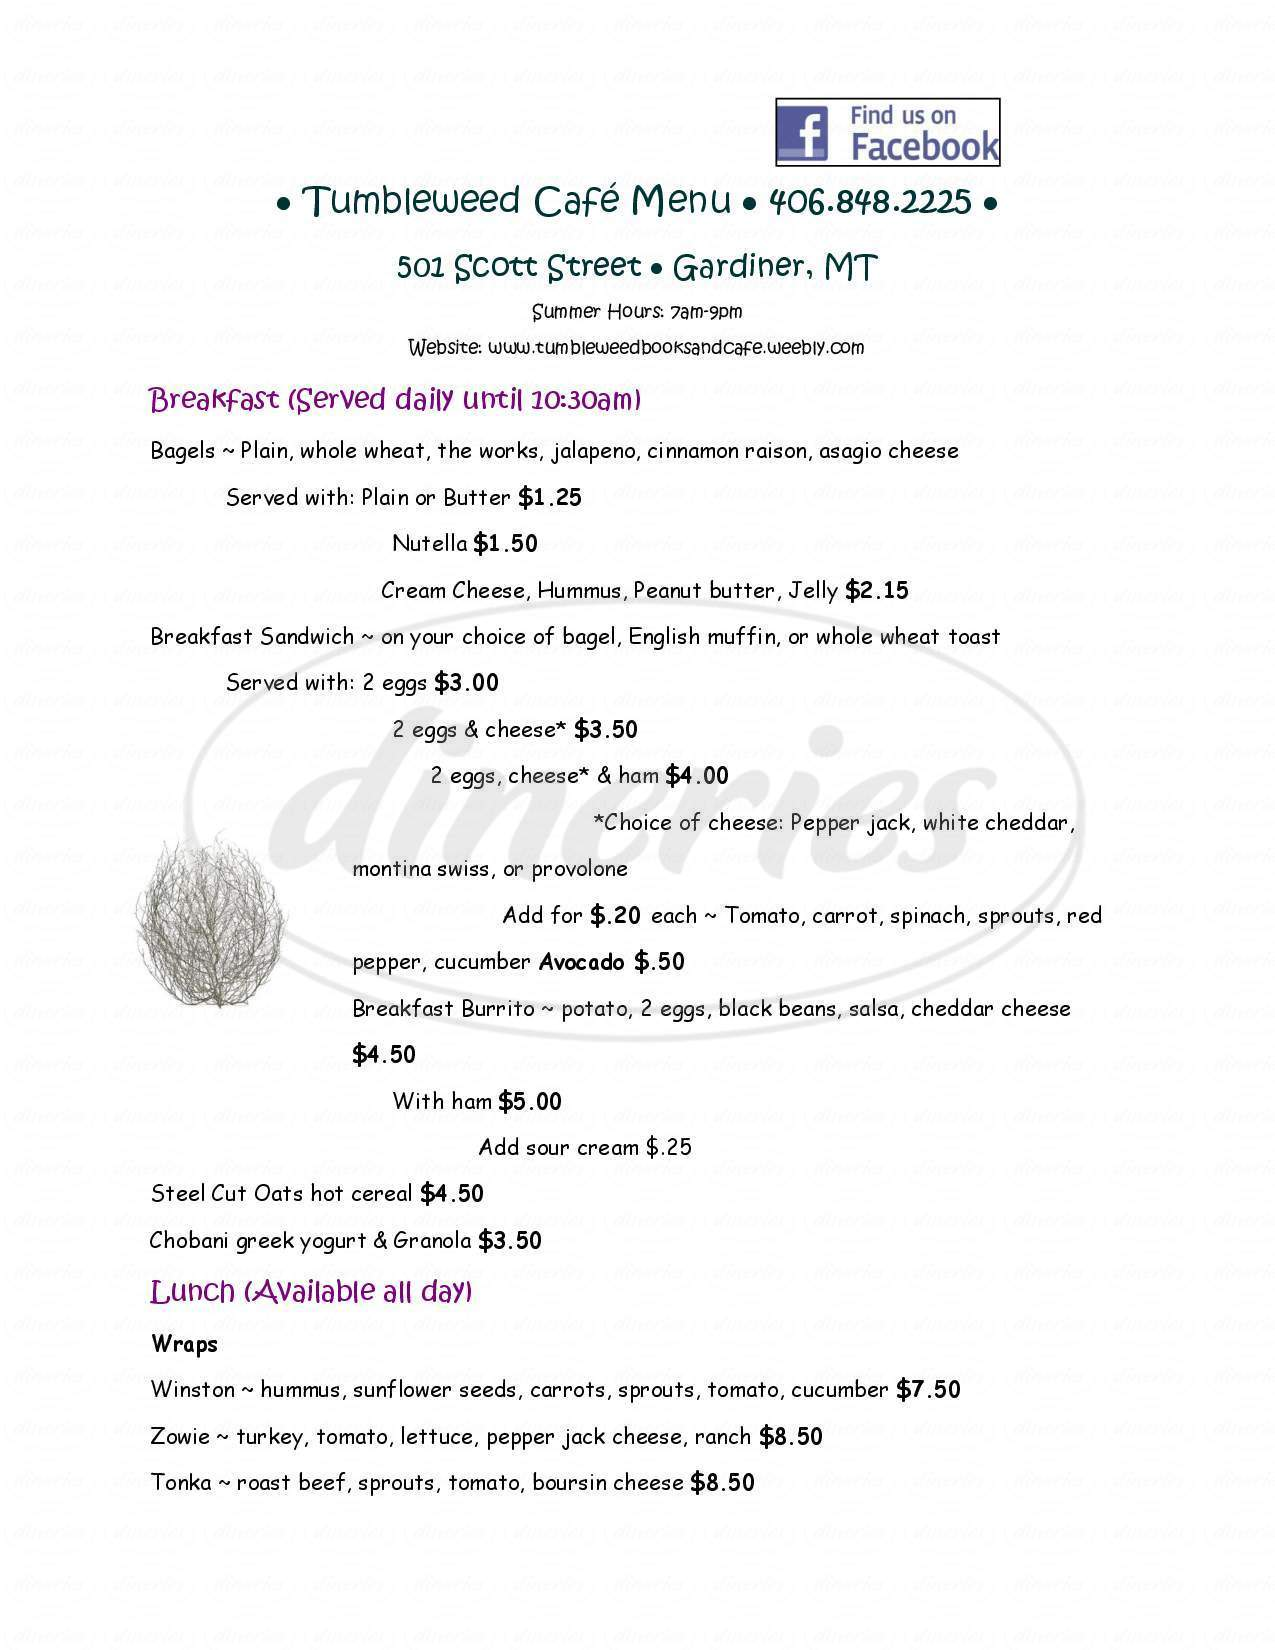 menu for Tumbleweed Bookstore & Cafe